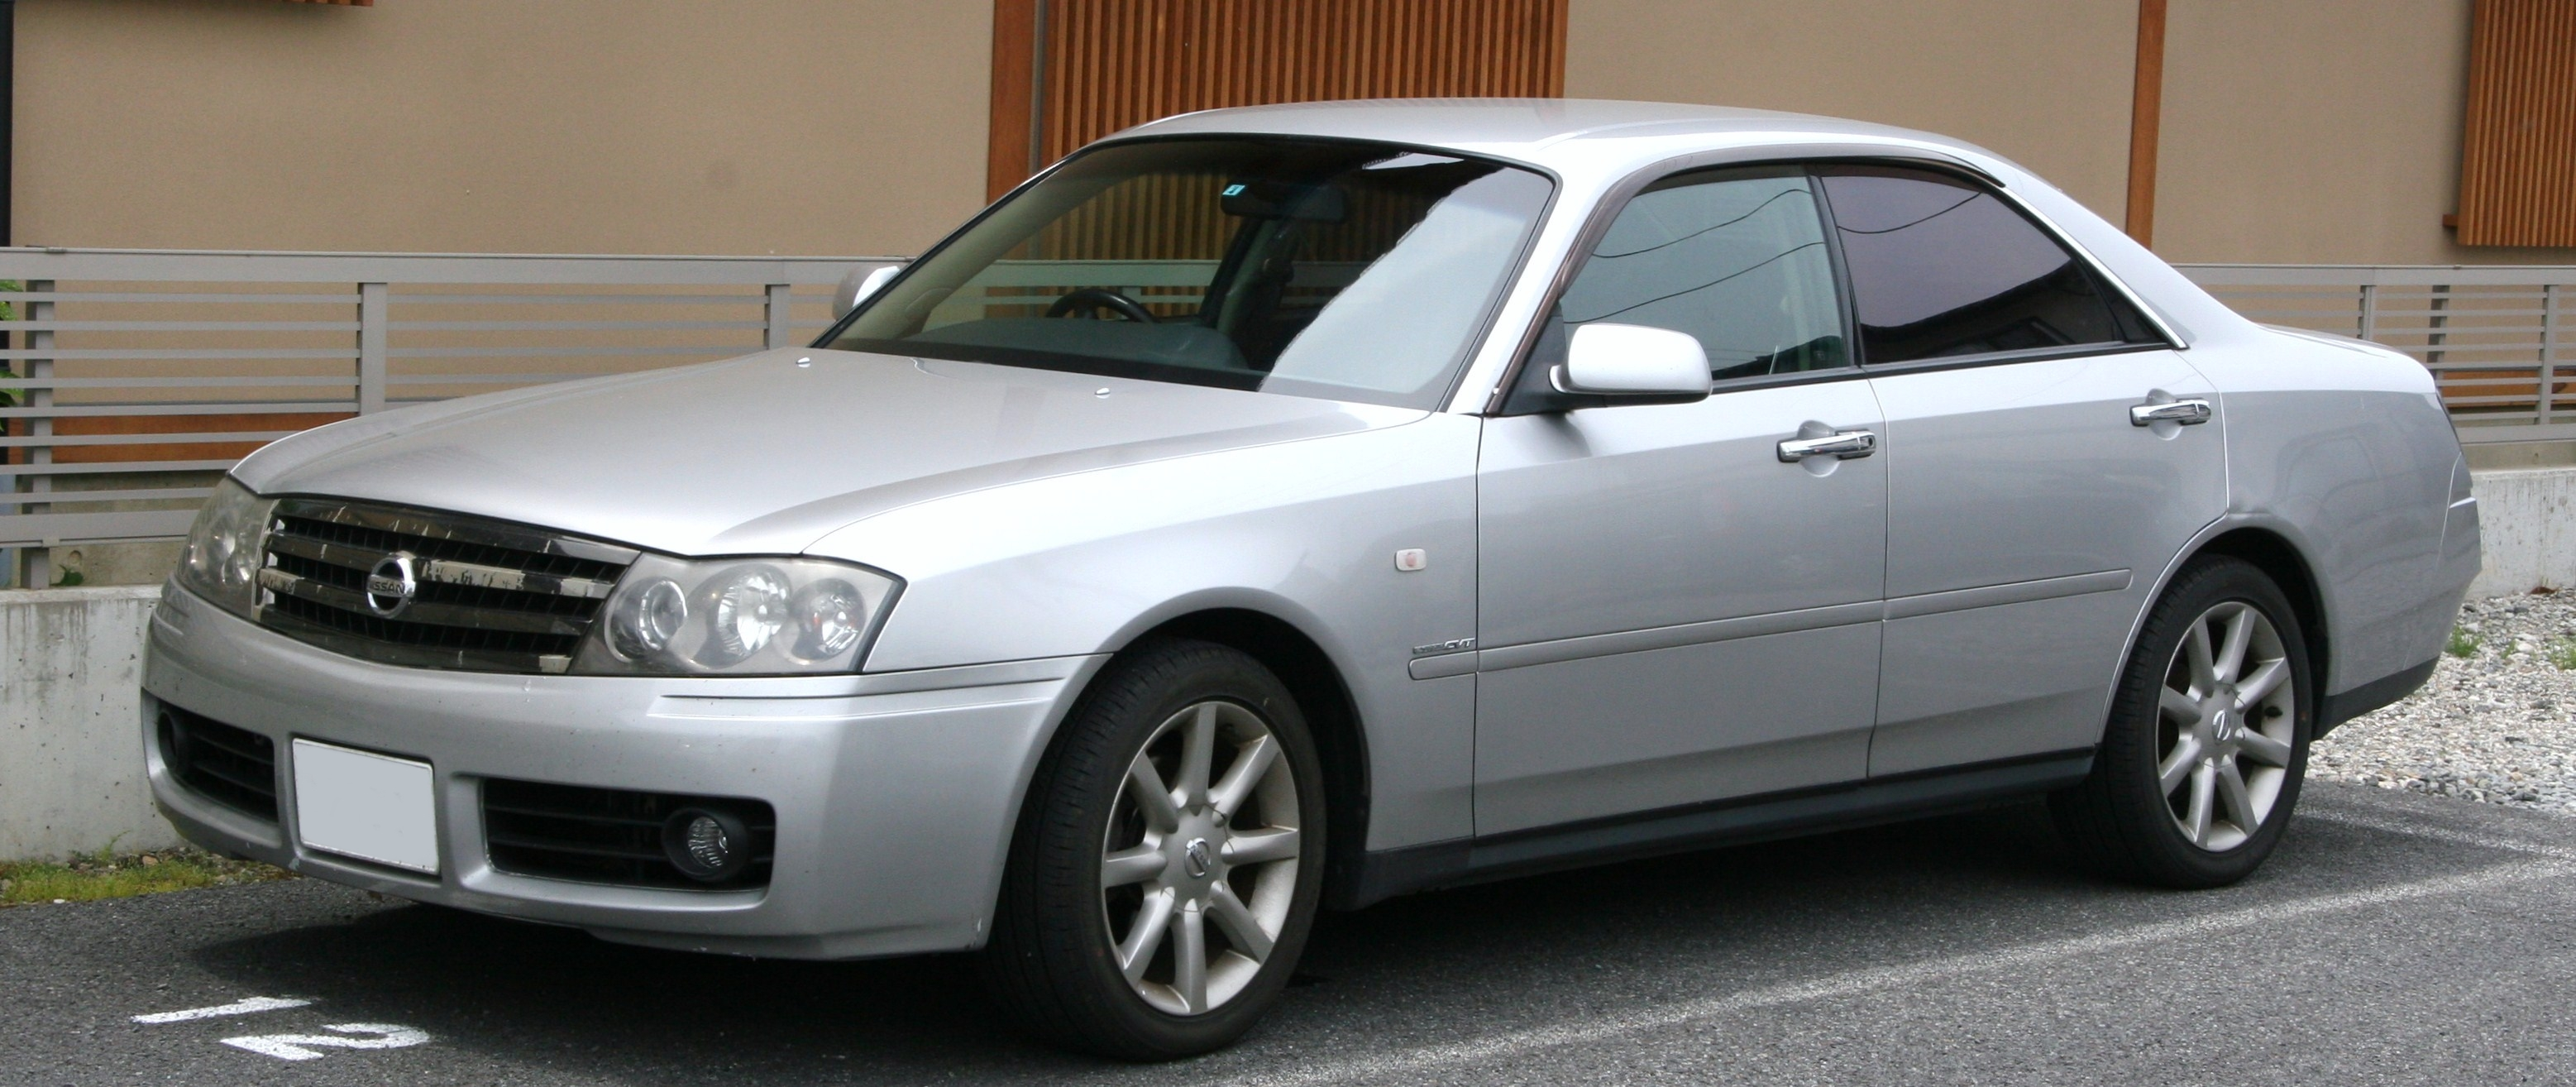 2001 Nissan Gloria (y34)   pictures, information and specs - Auto